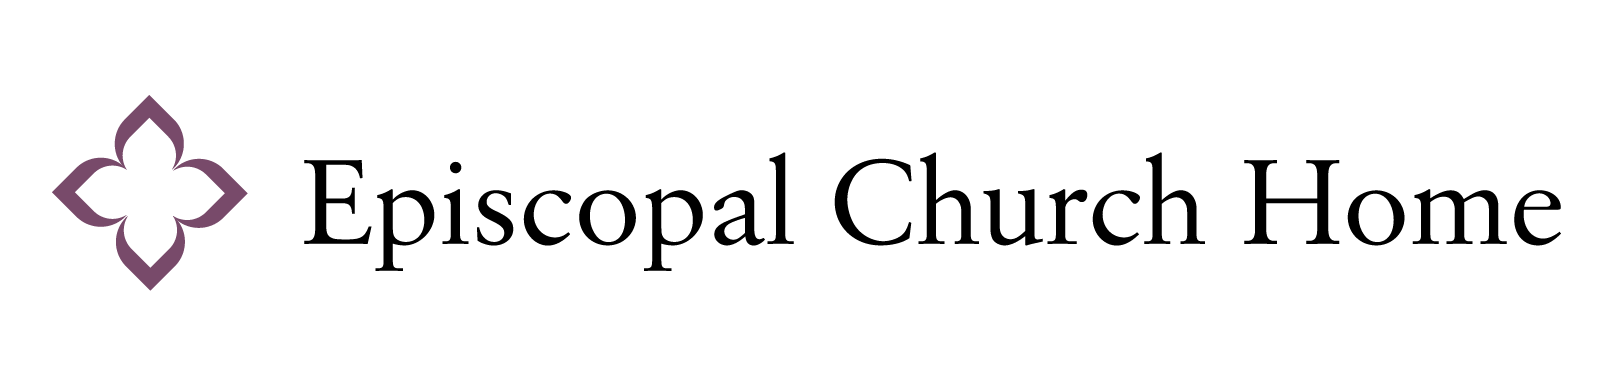 Episcopal Church Home Logo